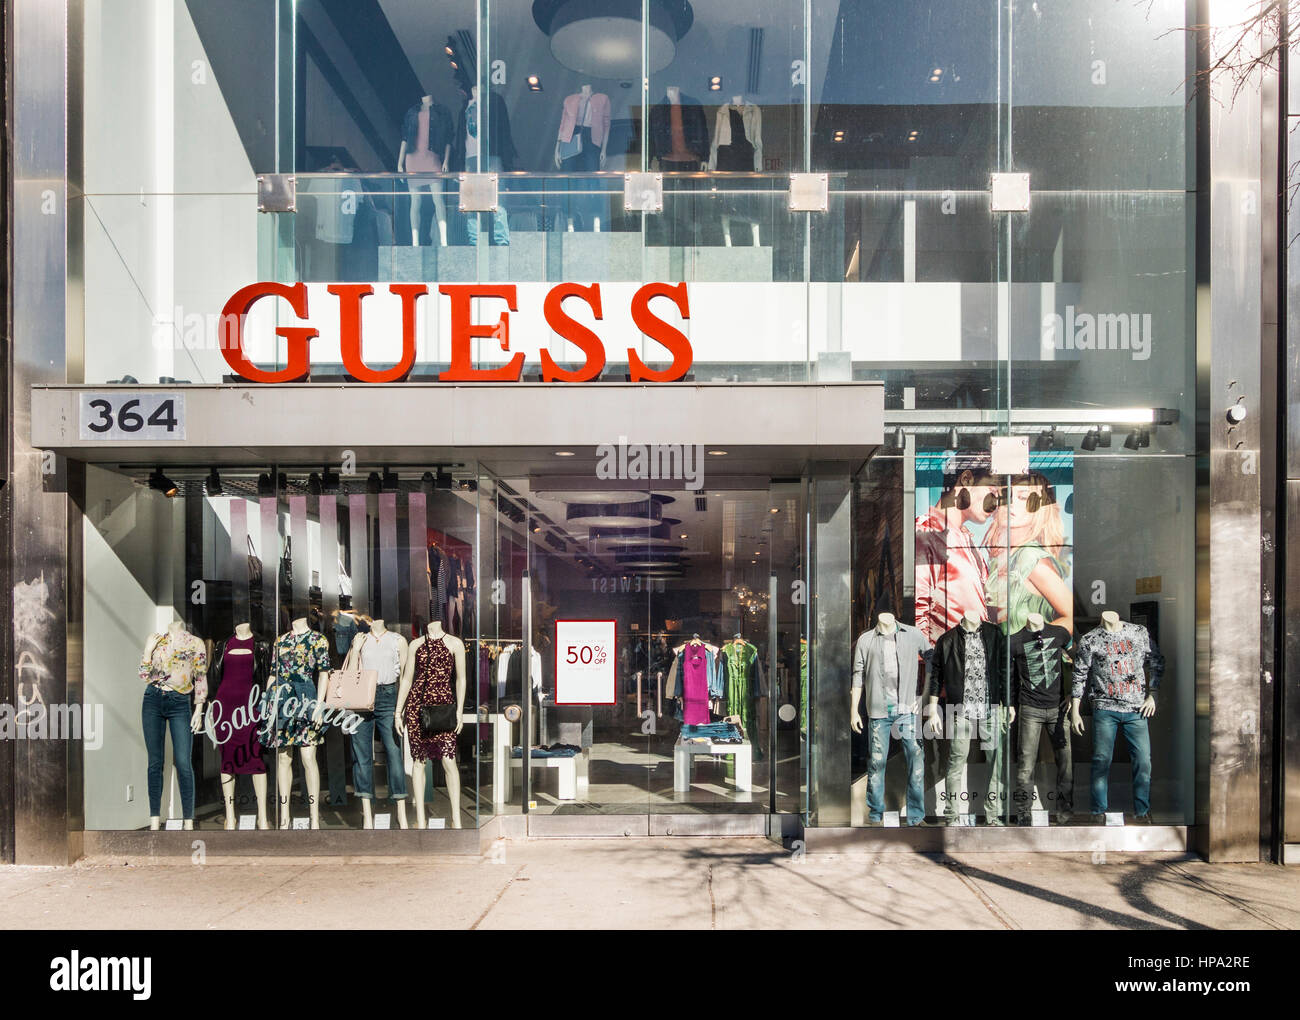 Queens clothing store